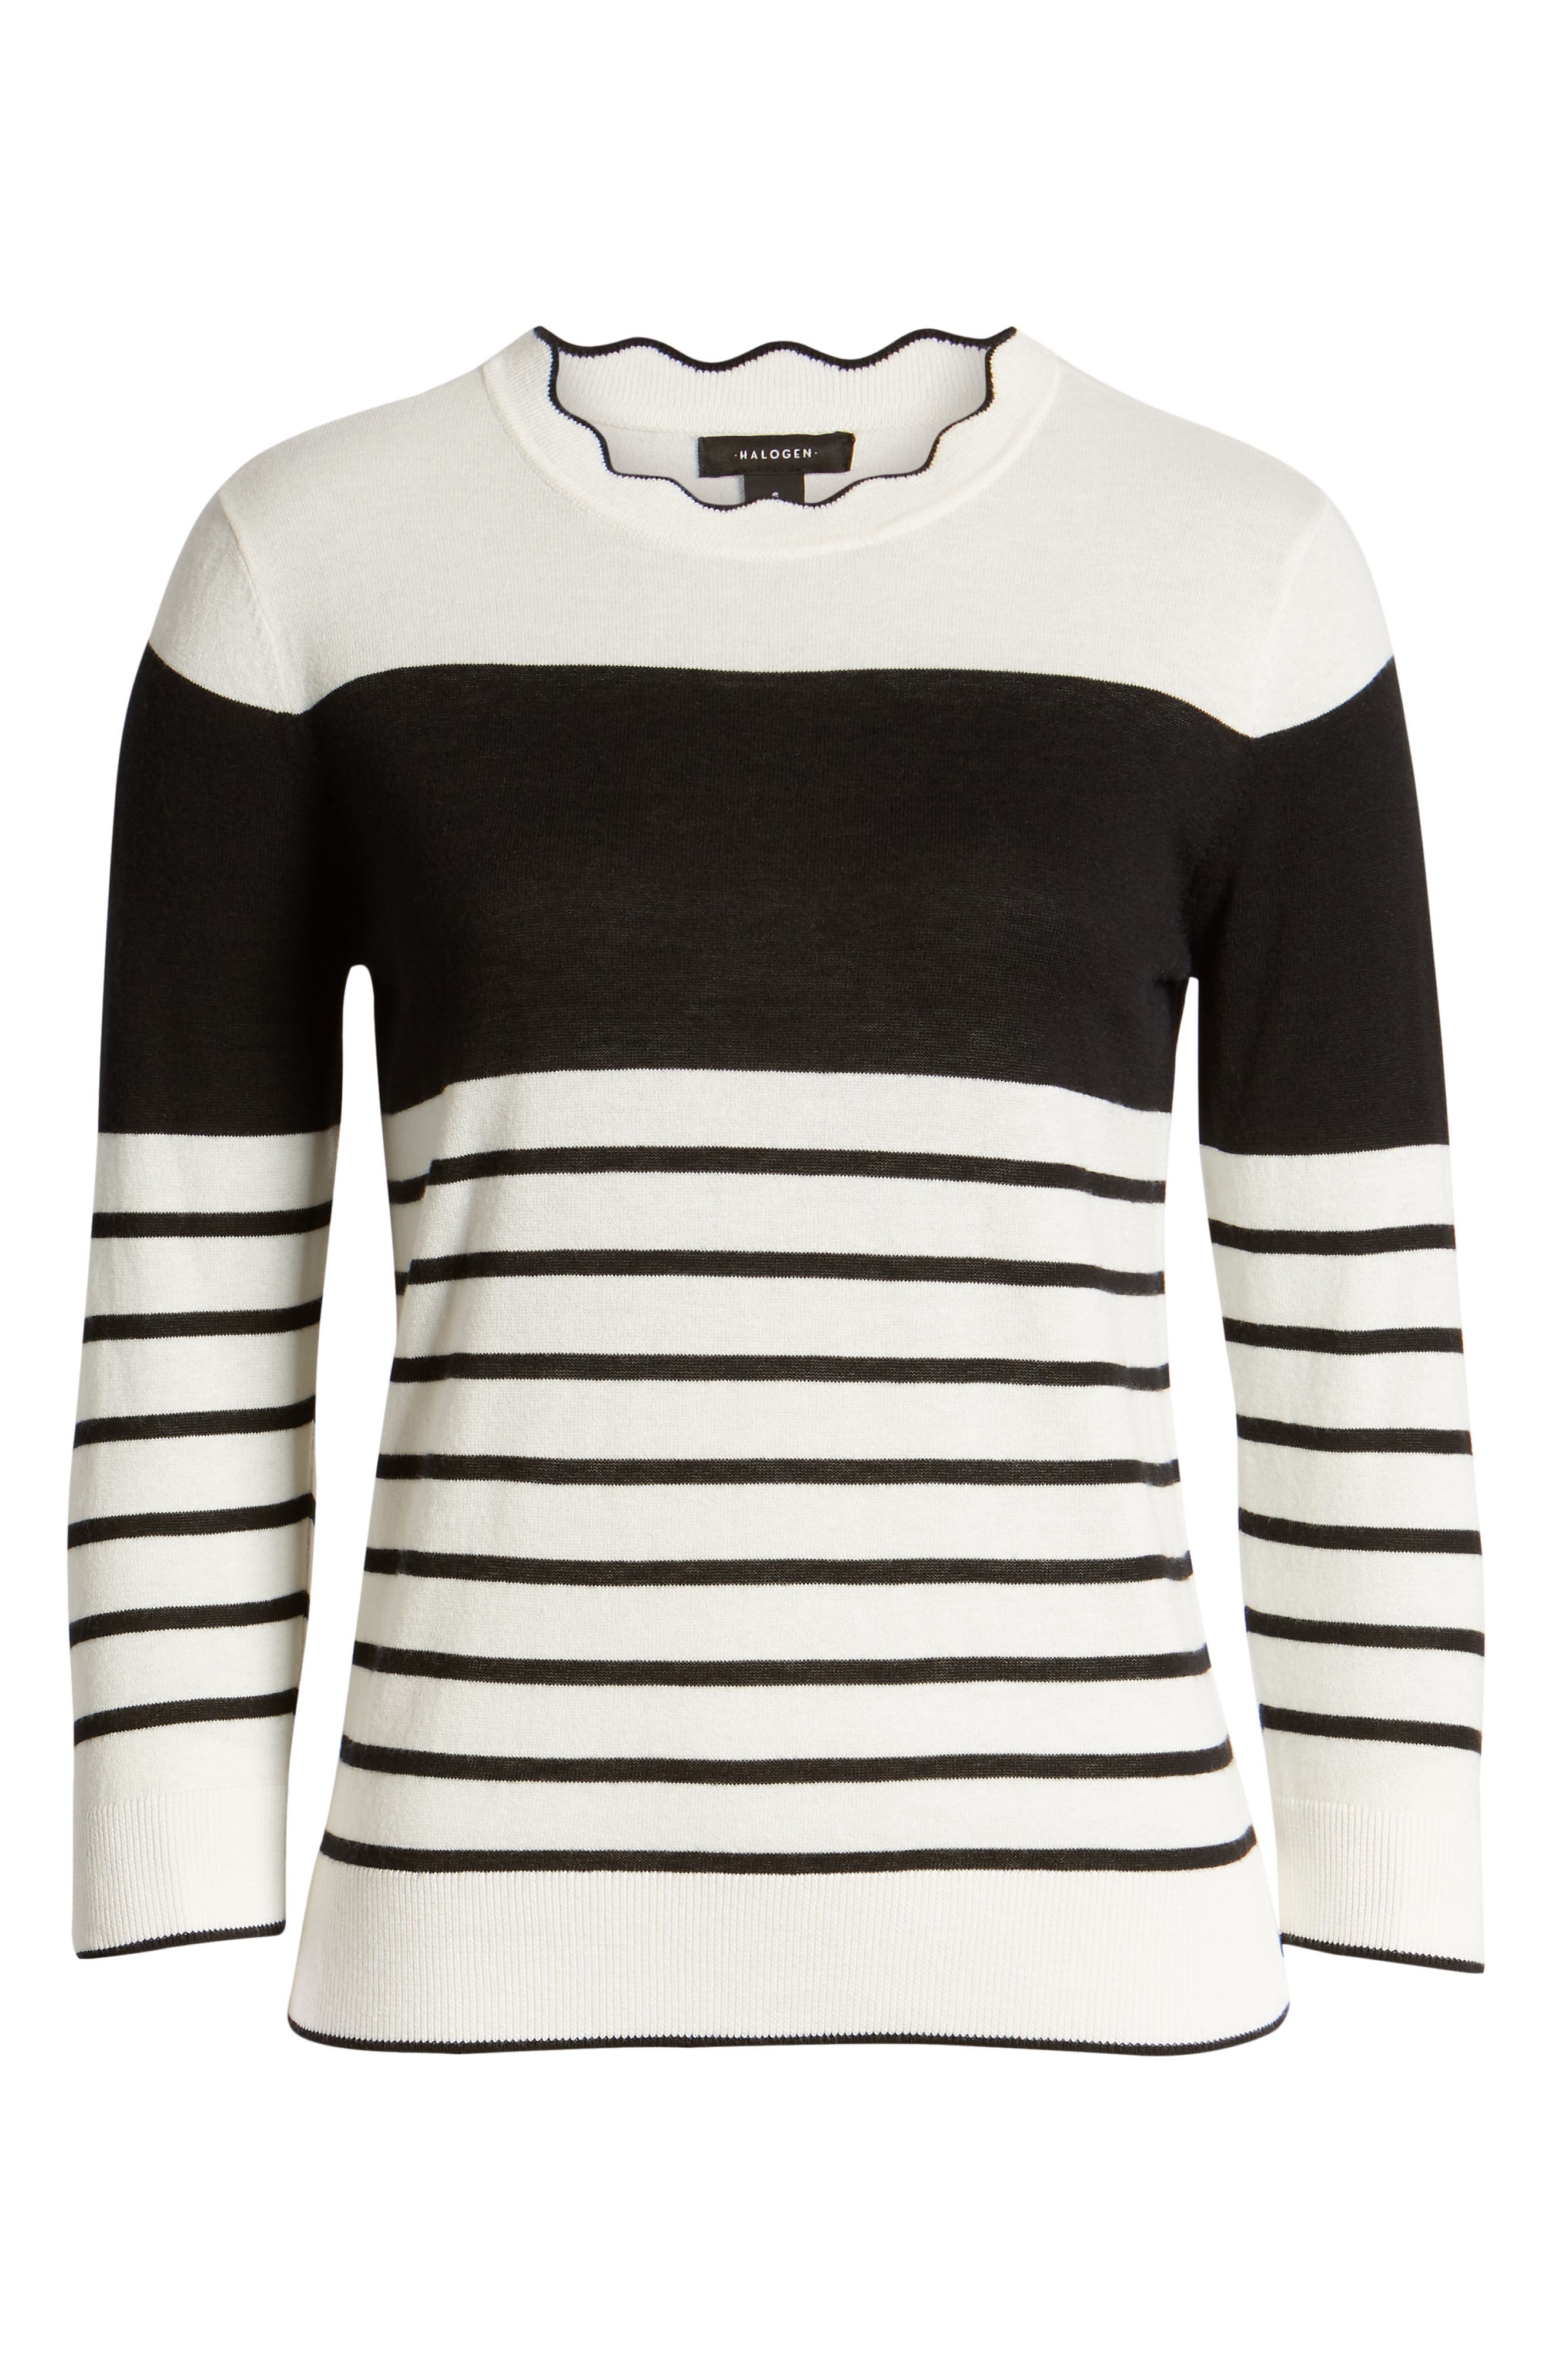 HALOGEN<SUP>®</SUP>, Scallop Neck Sweater, Alternate thumbnail 6, color, 900